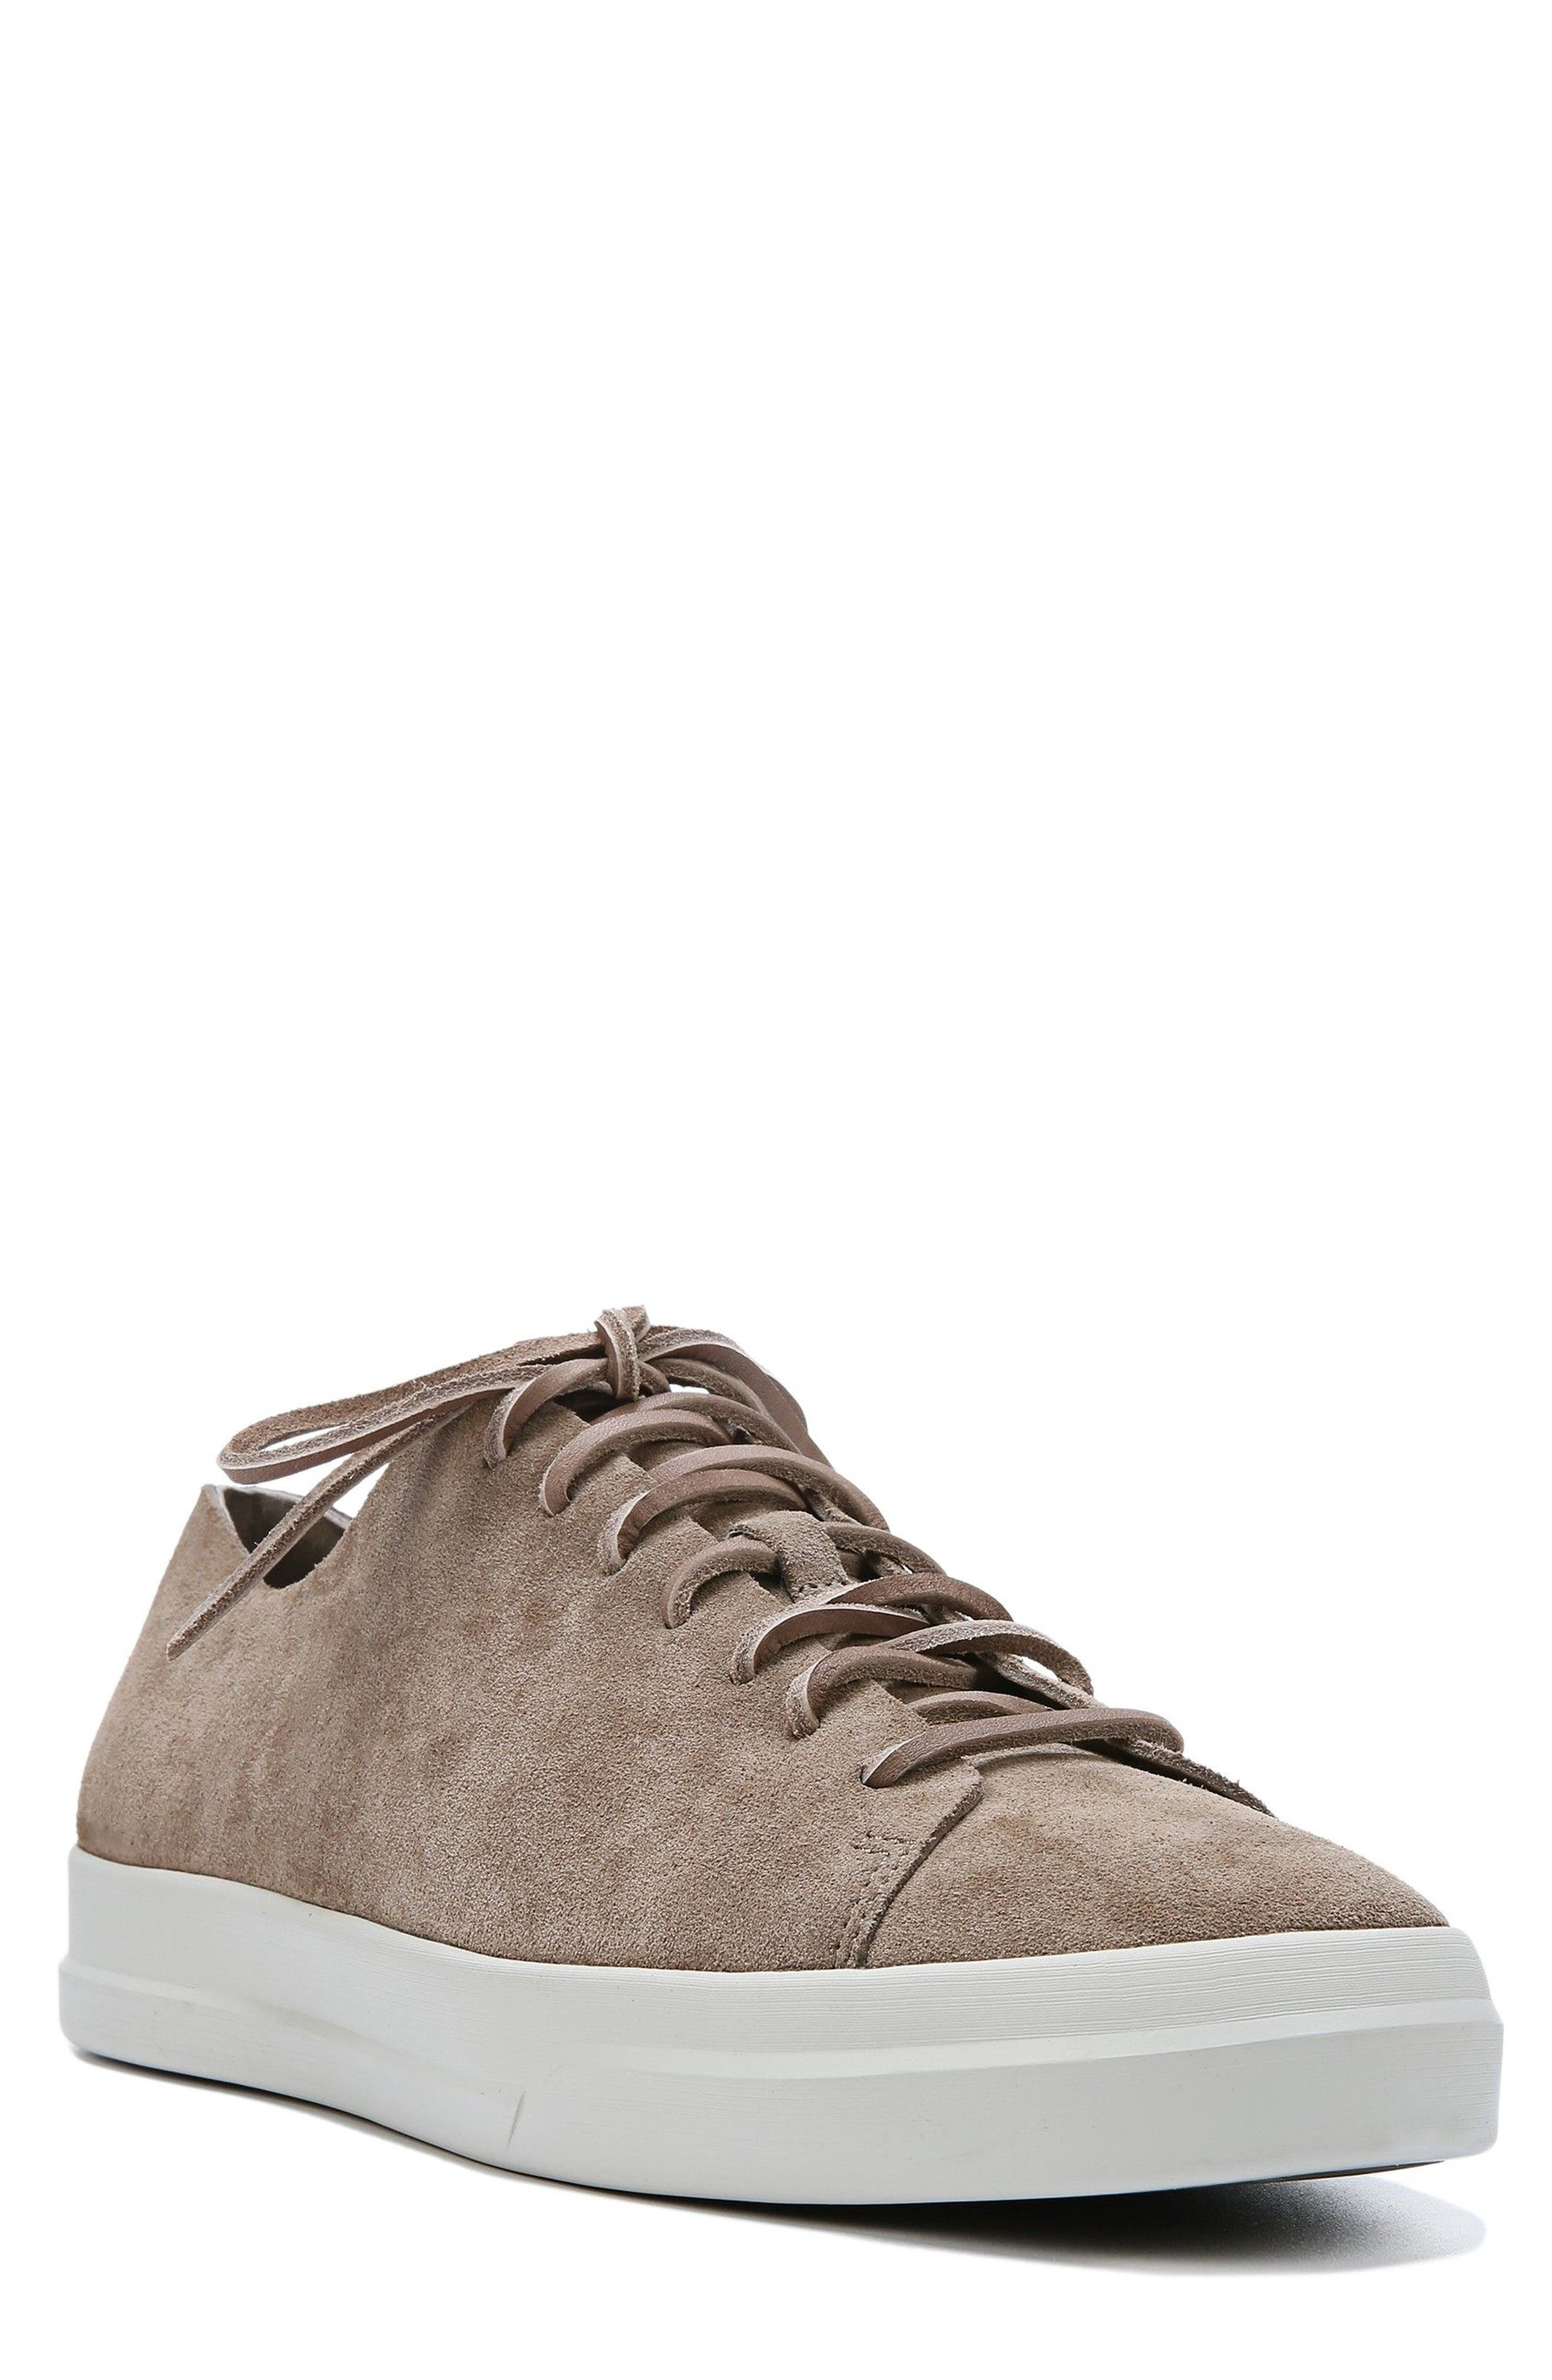 Copeland Sneaker,                             Main thumbnail 1, color,                             Flint Tan Suede